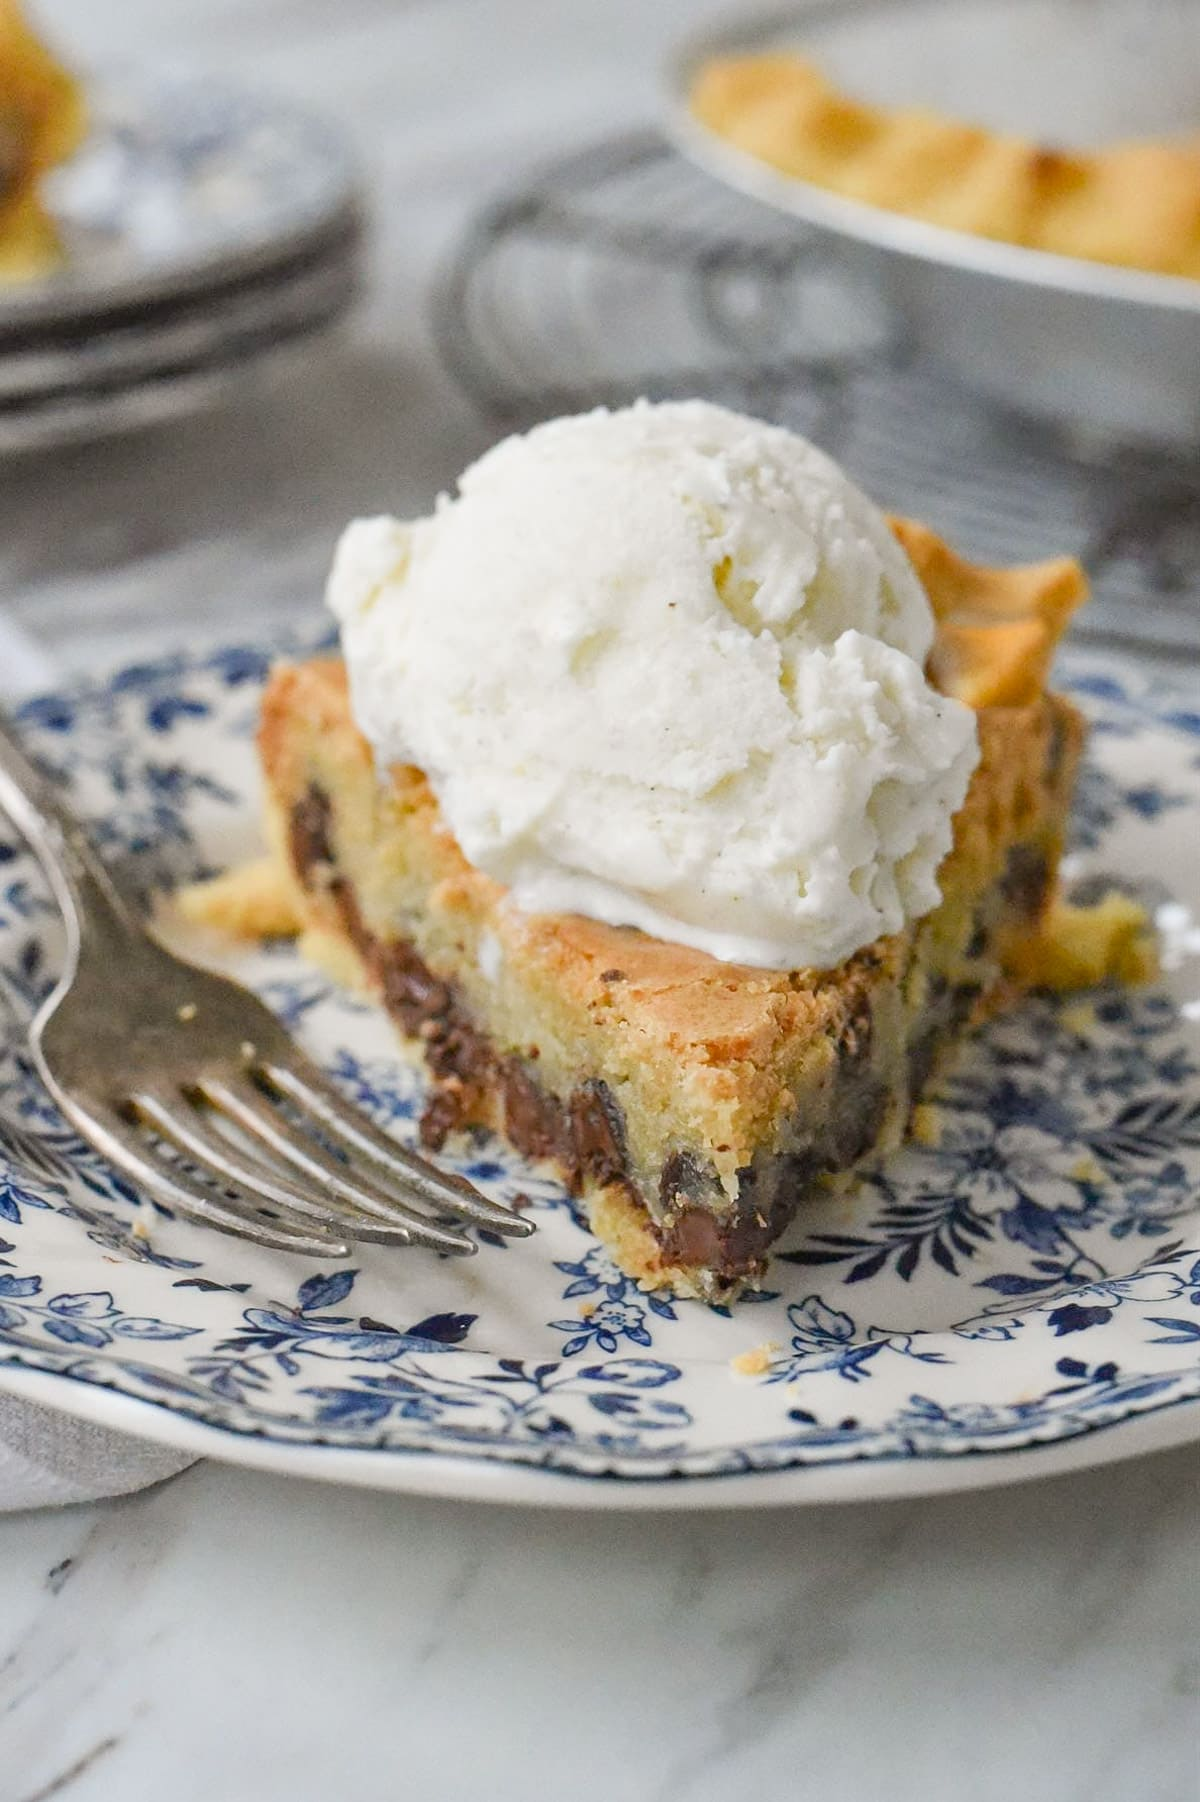 slice of pie with ice cream